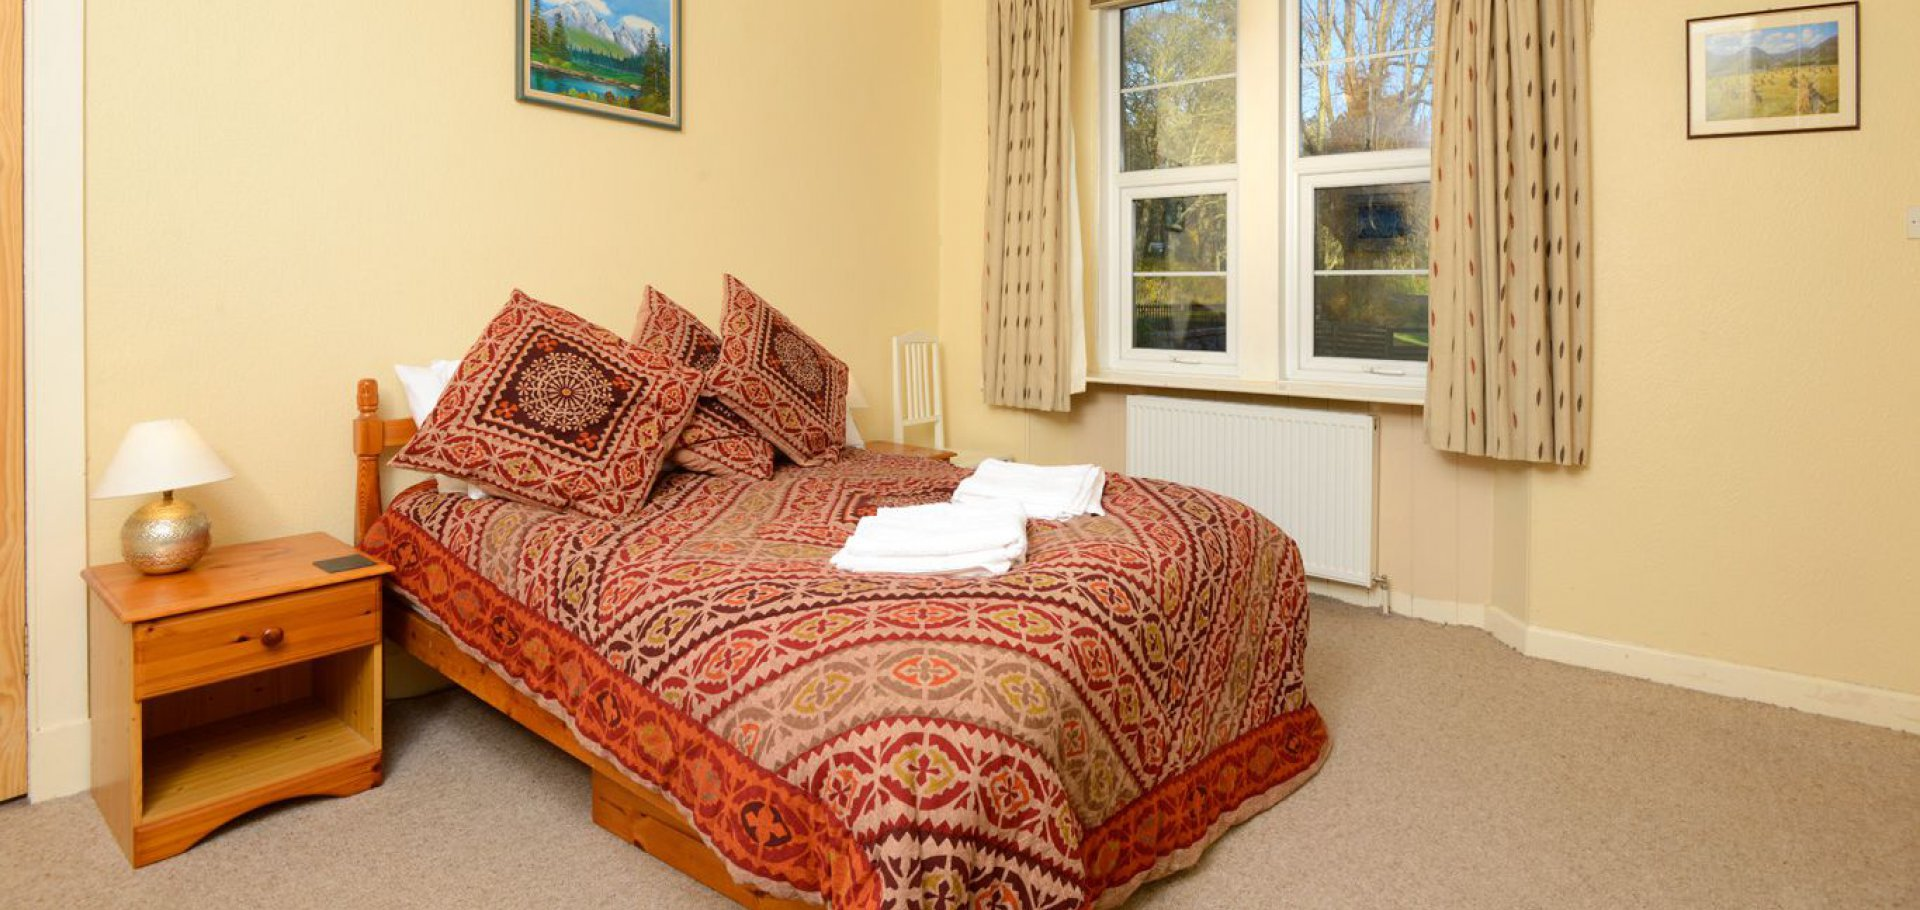 King sized double bedroom at the lodge self catering holiday cottage near castle douglas in dumfries and galloway